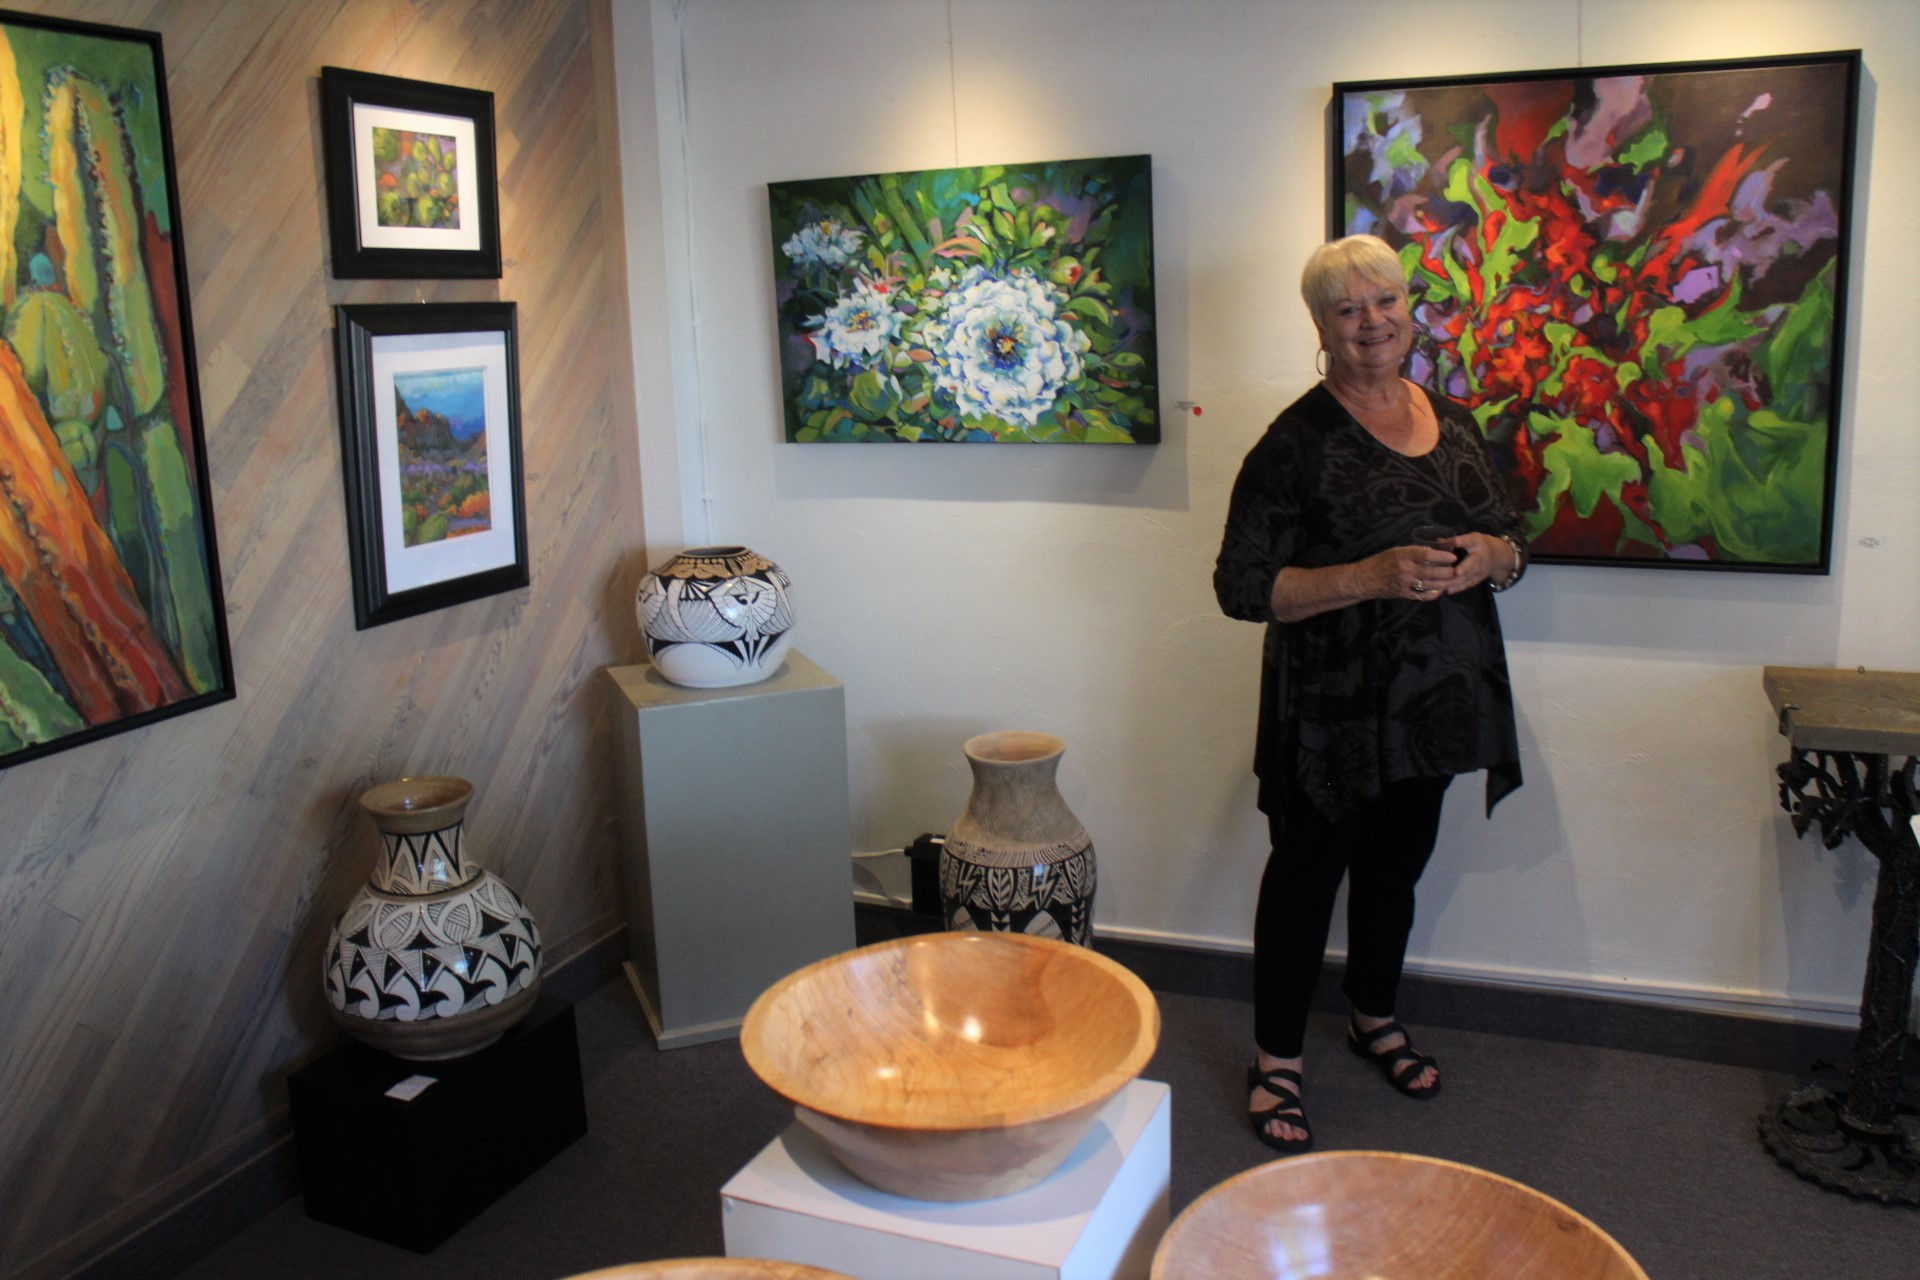 Jane Walter Bousman, standing among her paintings, was the featured June artist at Two Rivers Gallery